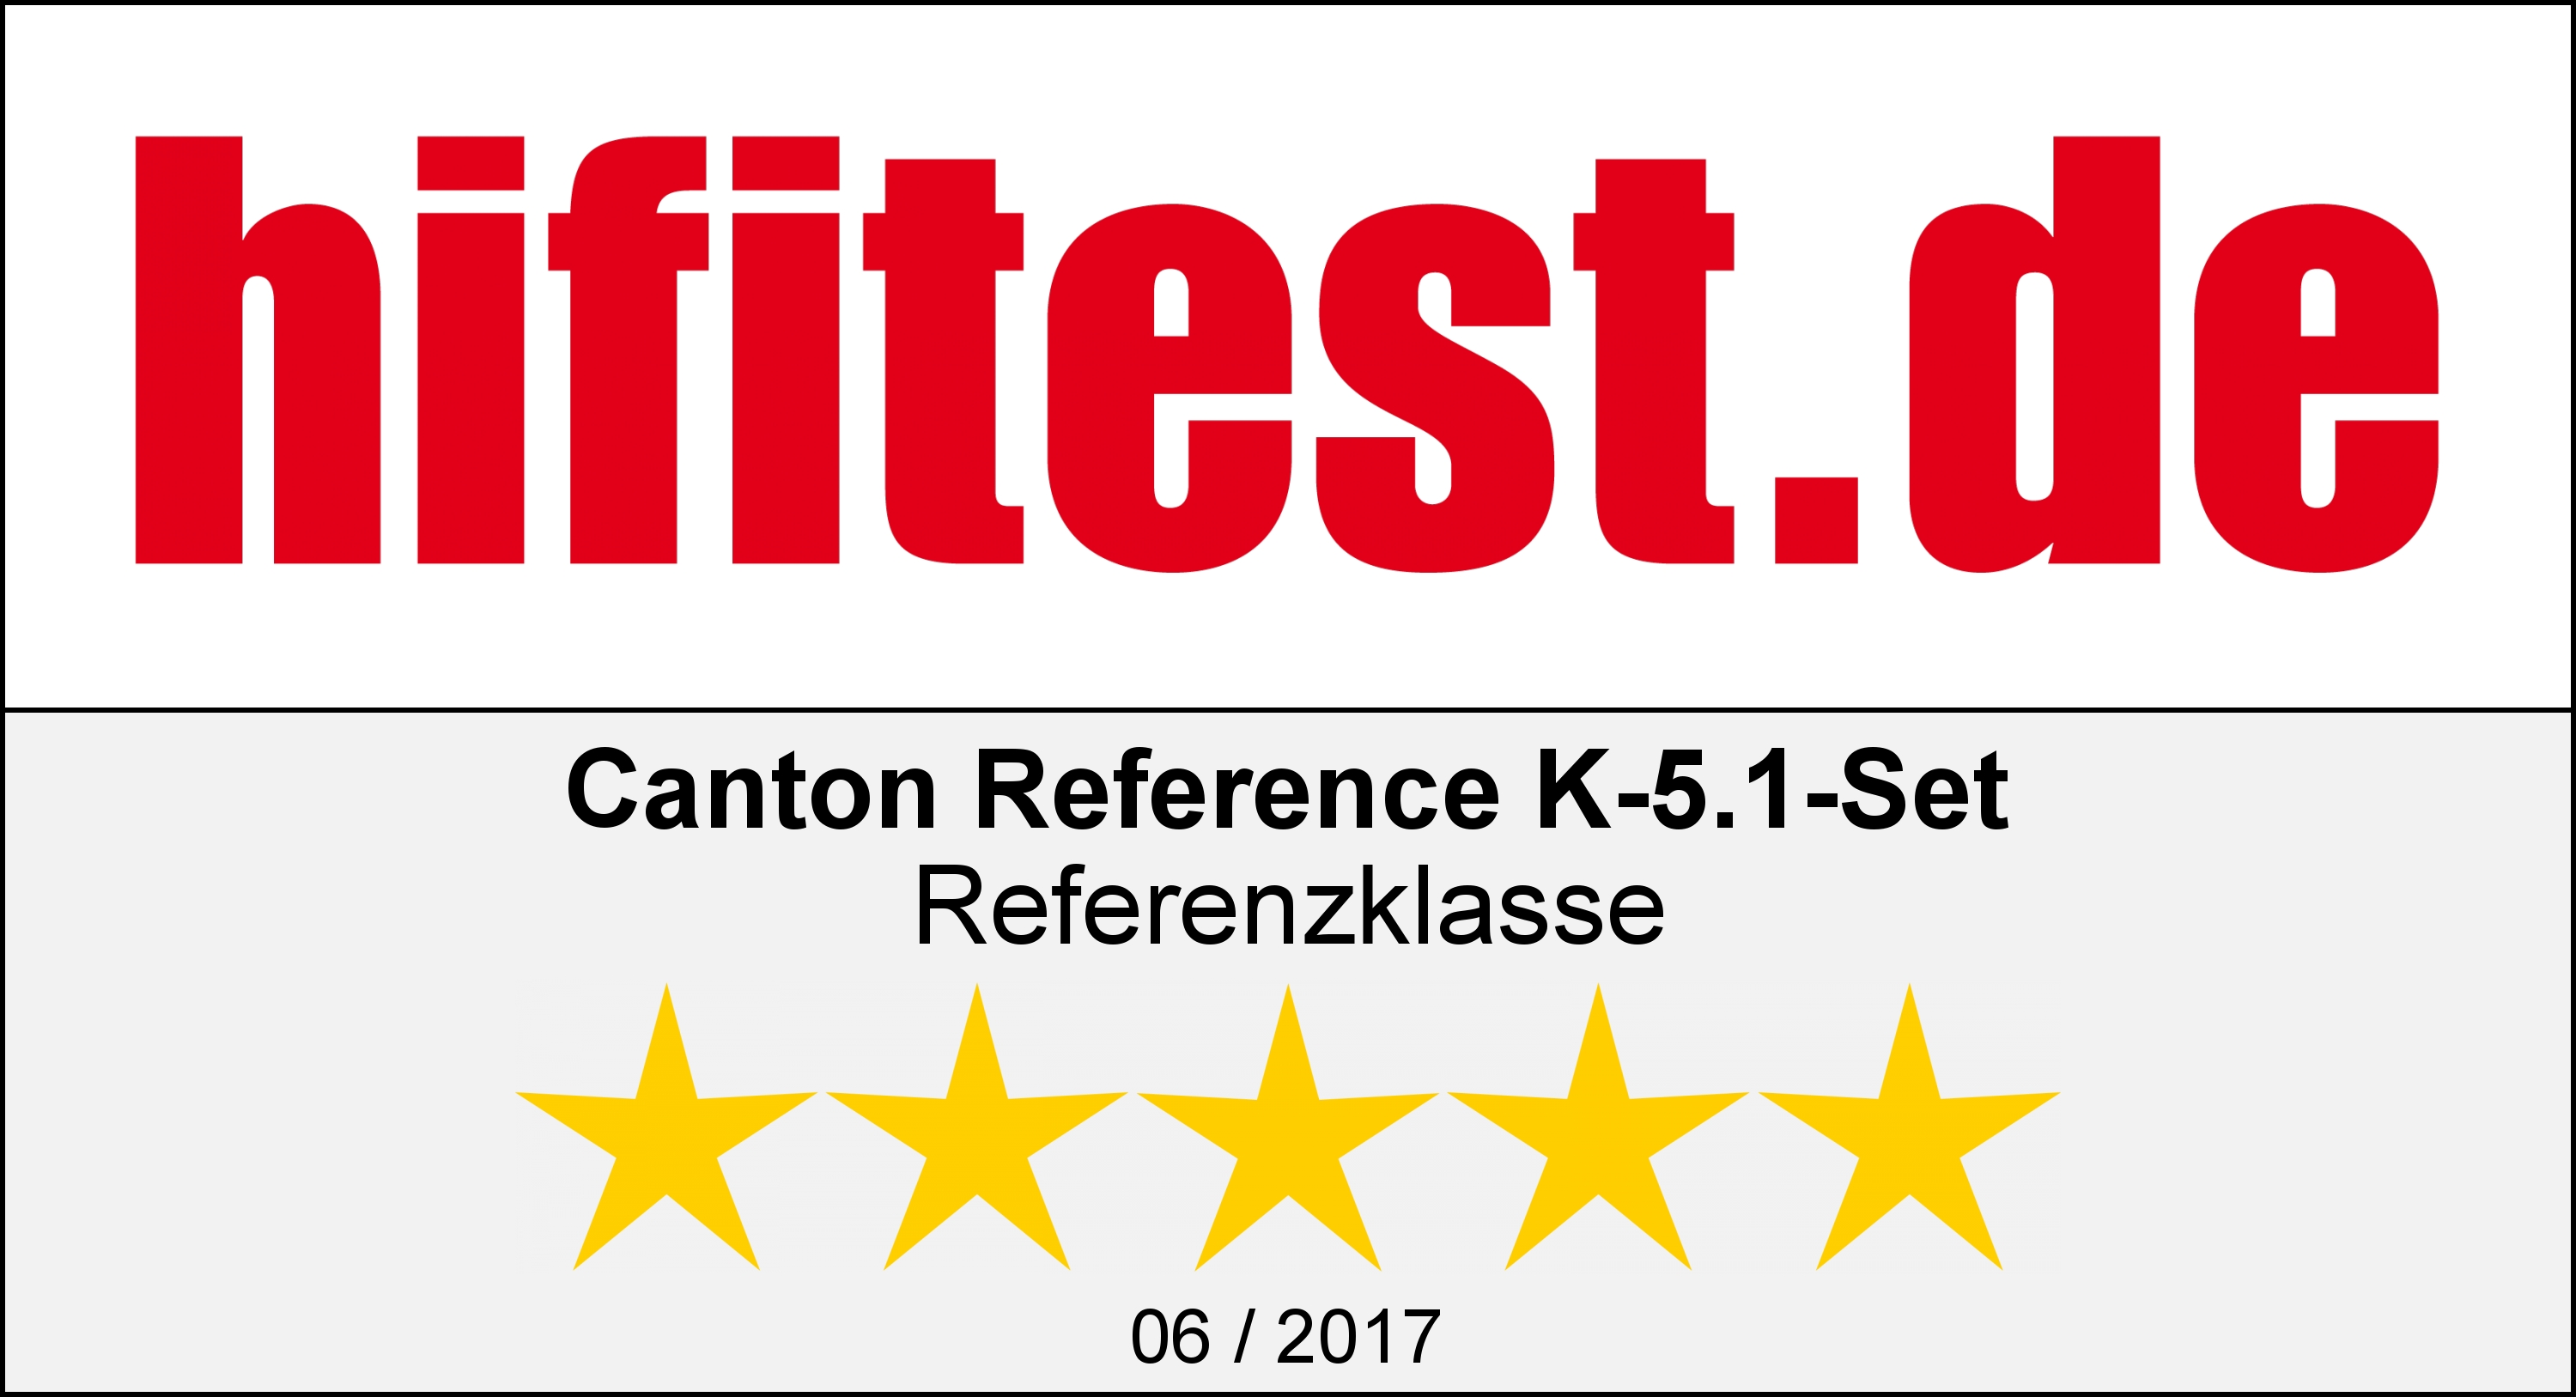 Reference_K_5-1_Set_hifitest-de_Refernzklasse596f0c45c56ca